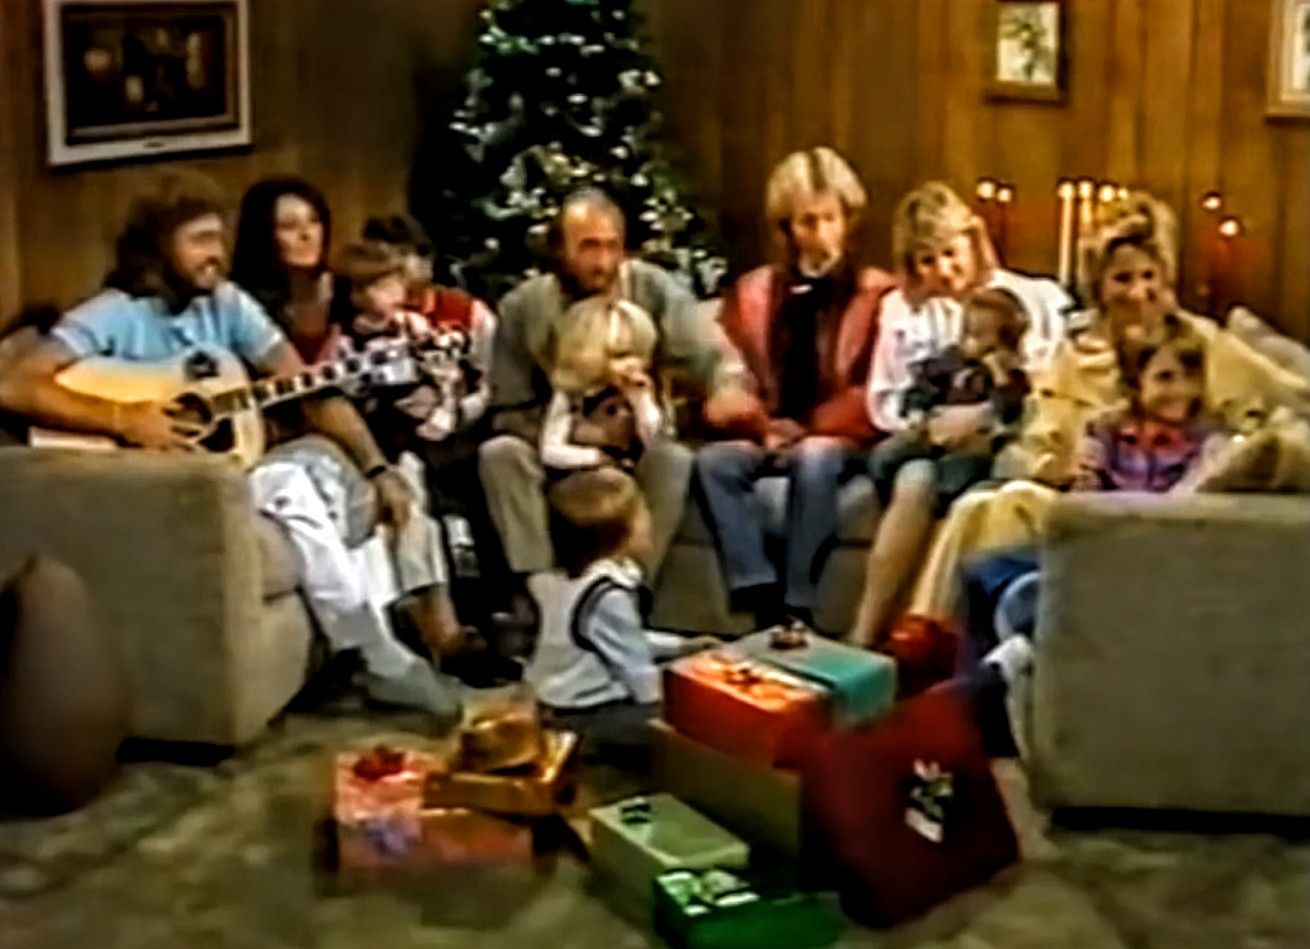 Bee Gee S Guest Appearance Via Satellite From Miami On Cilla Black S Christmas Special Bee Gees Barry Gibb Andy Gibb